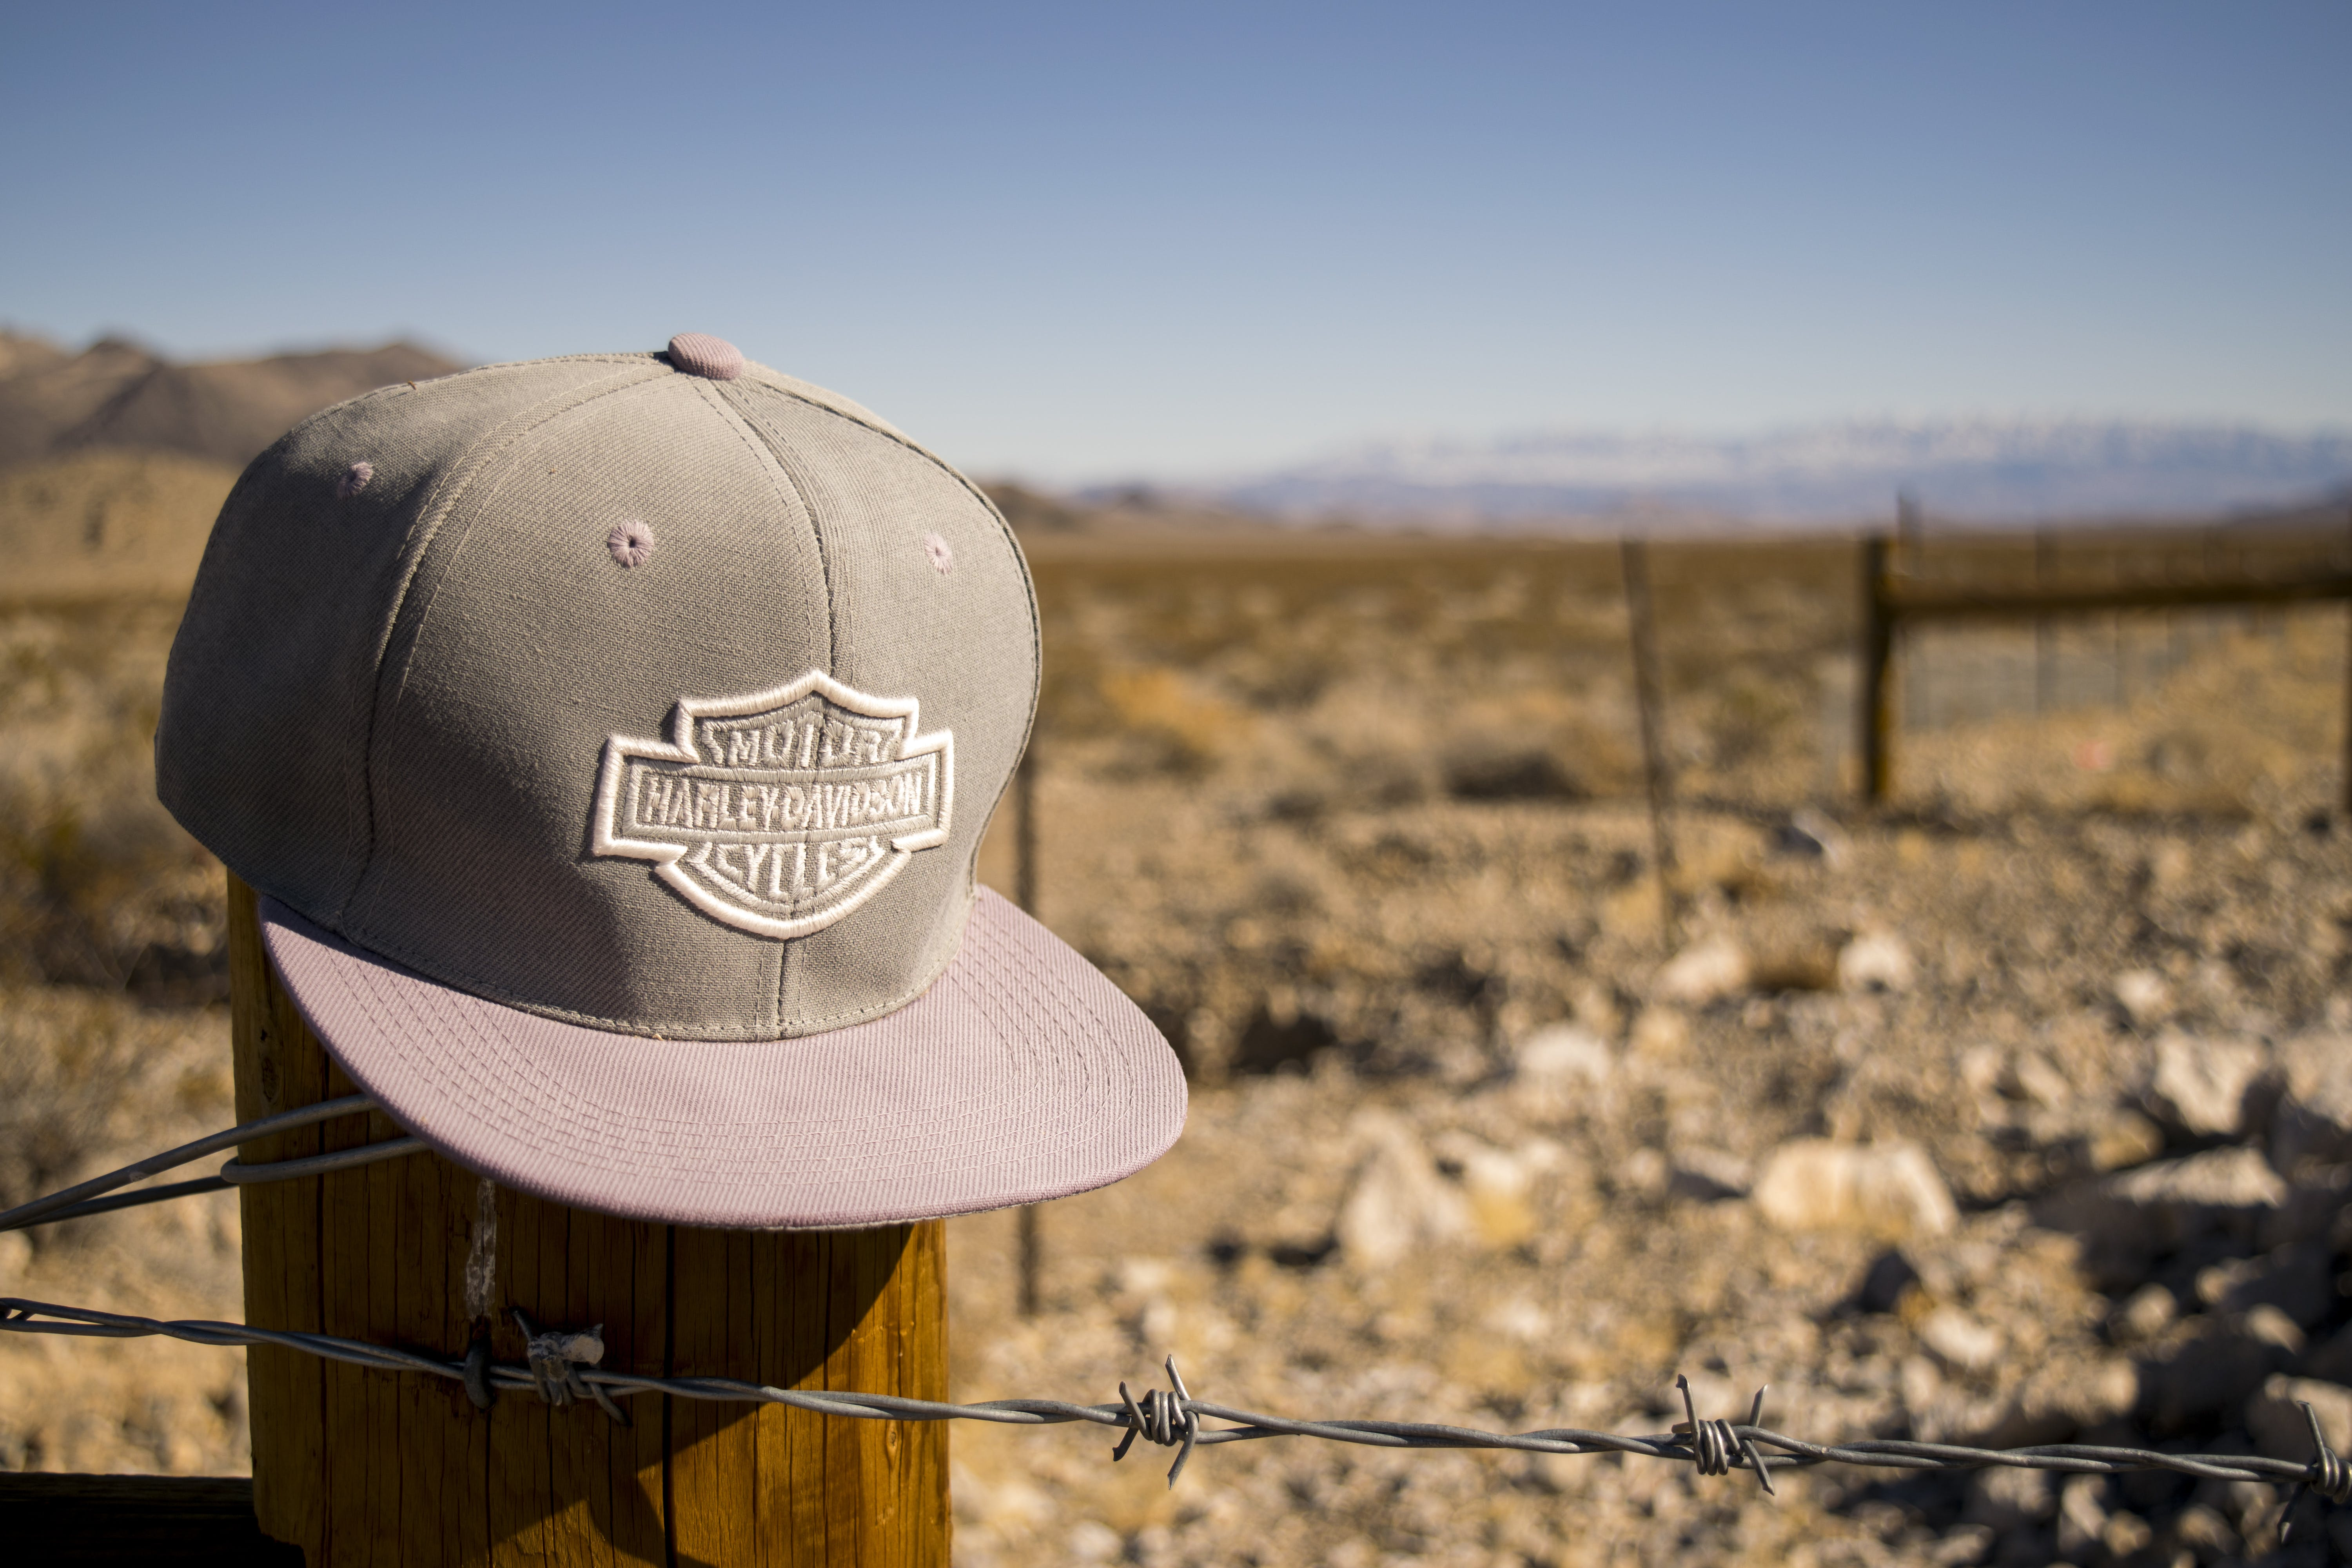 Gray Harley-davidson Motorcycles Flat-brimmed Cap Hanged on Brown Wooden Fence With Gray Barb Wires